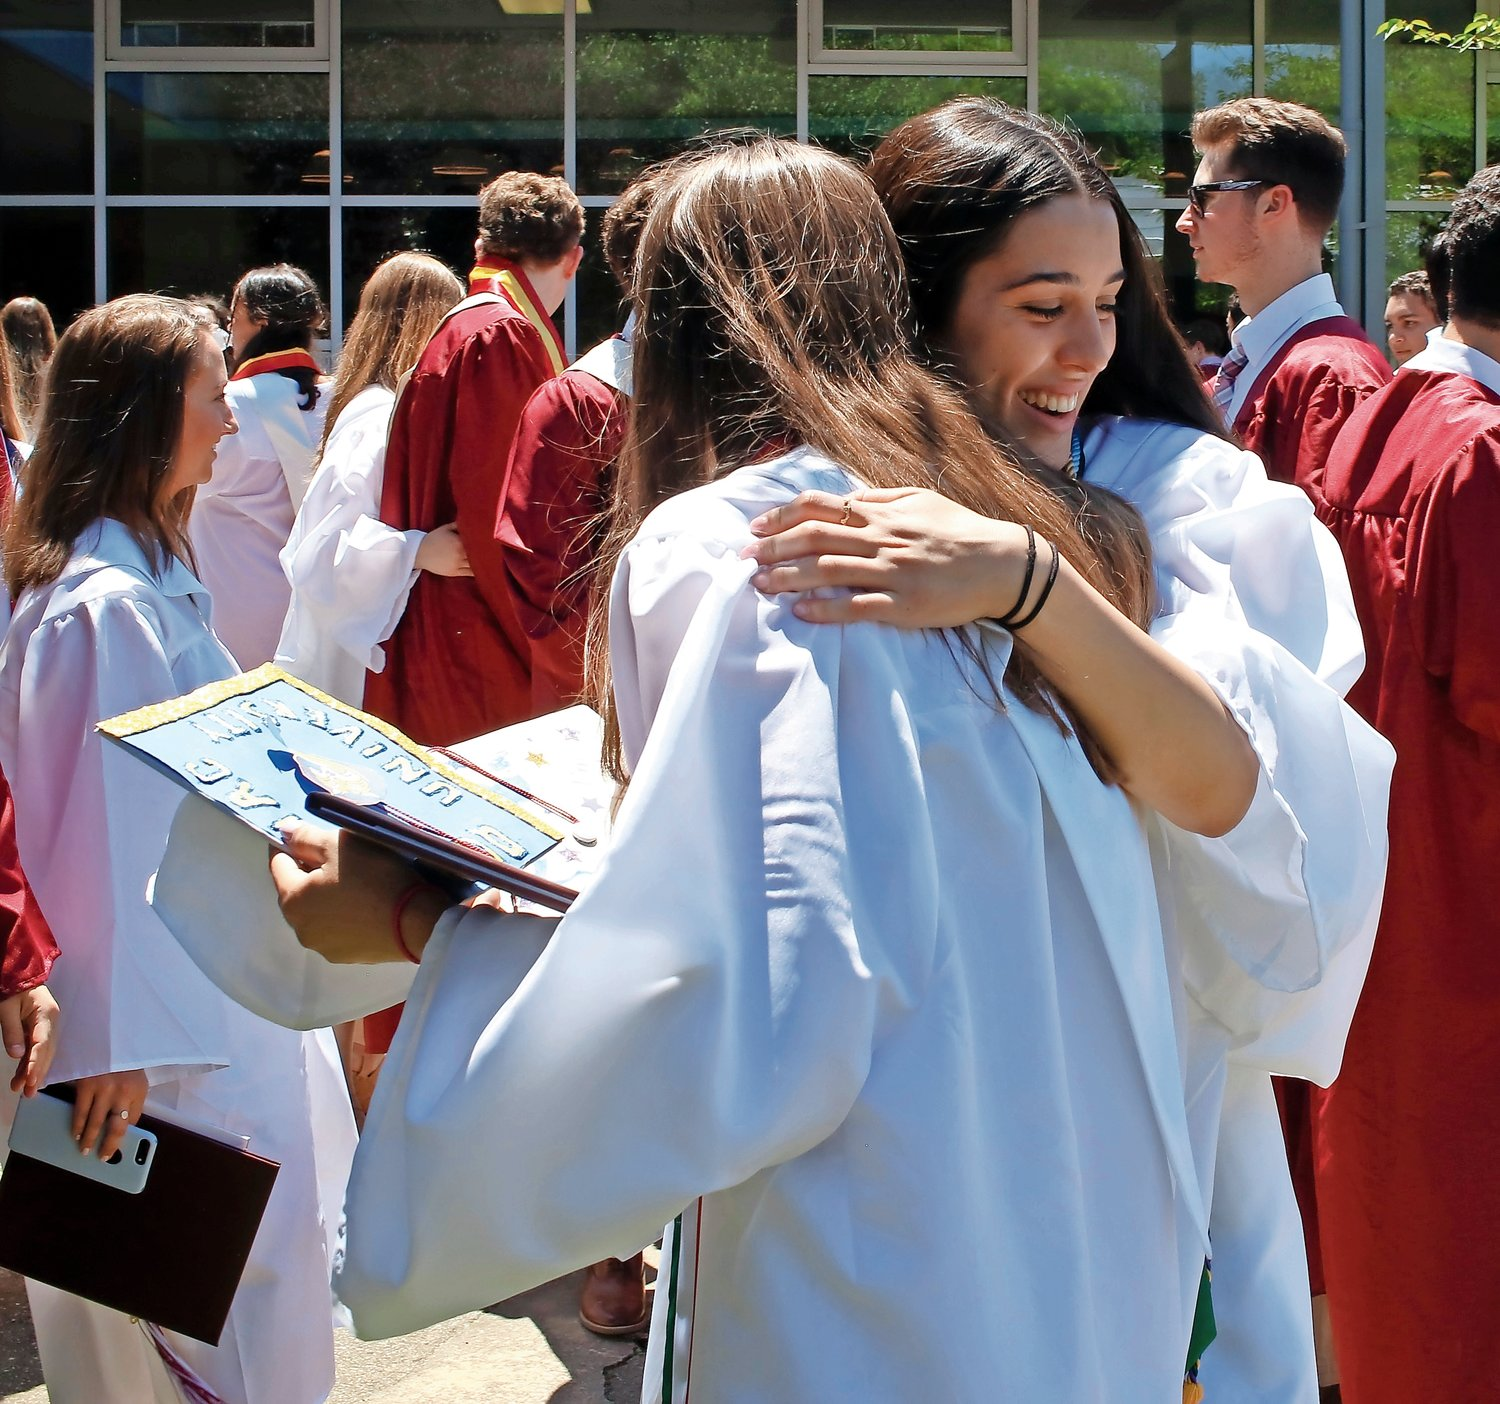 Cristina D'Amico, right, ran threw the crowd to hug her friend Alexandra Caldwell. They both graduated with seals of biliteracy and high honors.